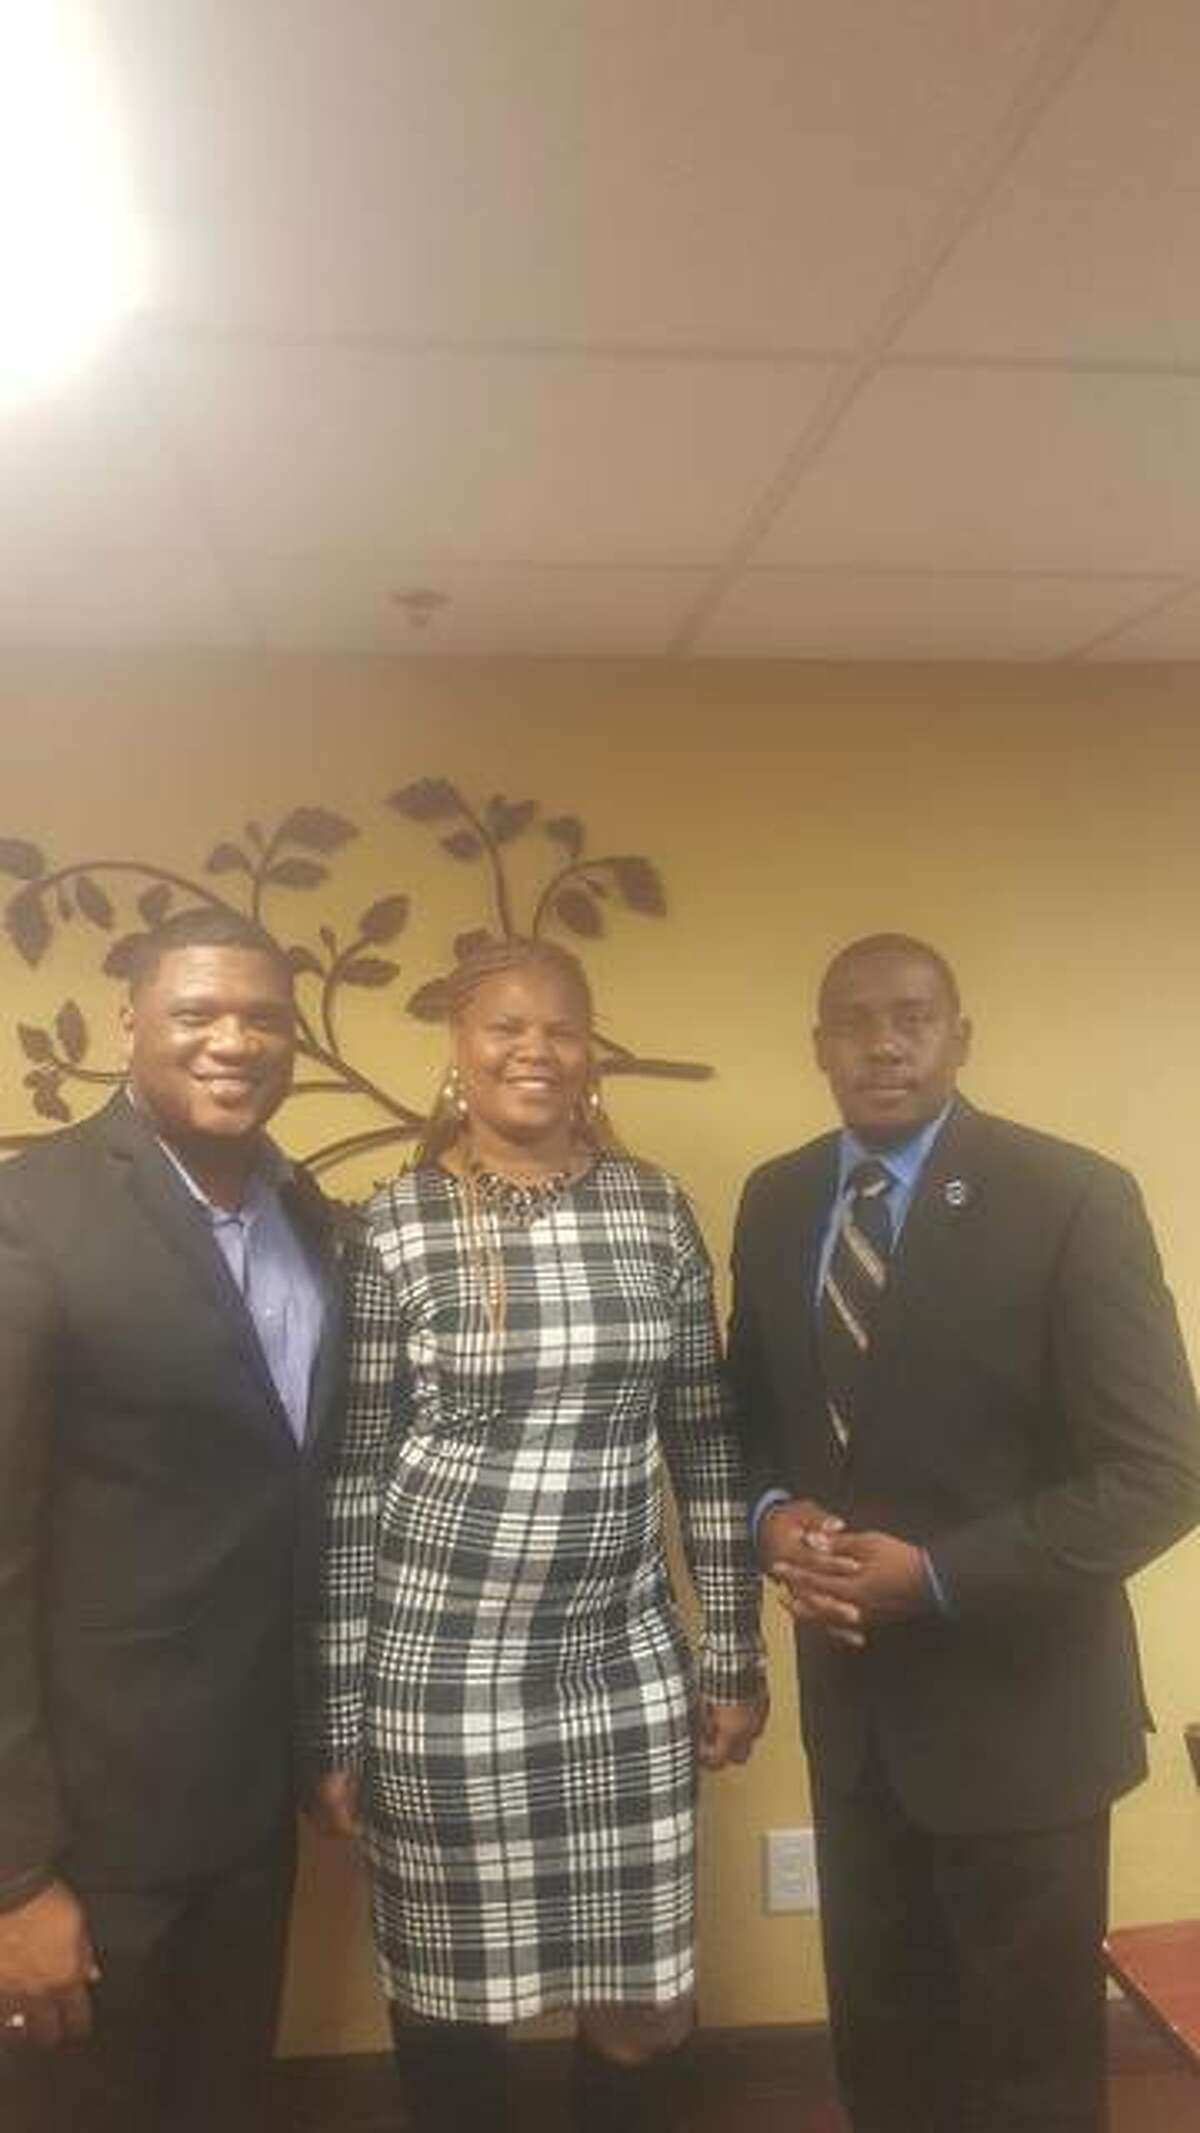 """From left to right, the Black Chamber of Commerce of Illinois' founder and state President Anthony """"Corey"""" Walker, of Decatur, the organization's Vice President Creola Davis, and Alton chapter President Rev. William Christopher Harris, of Alton."""